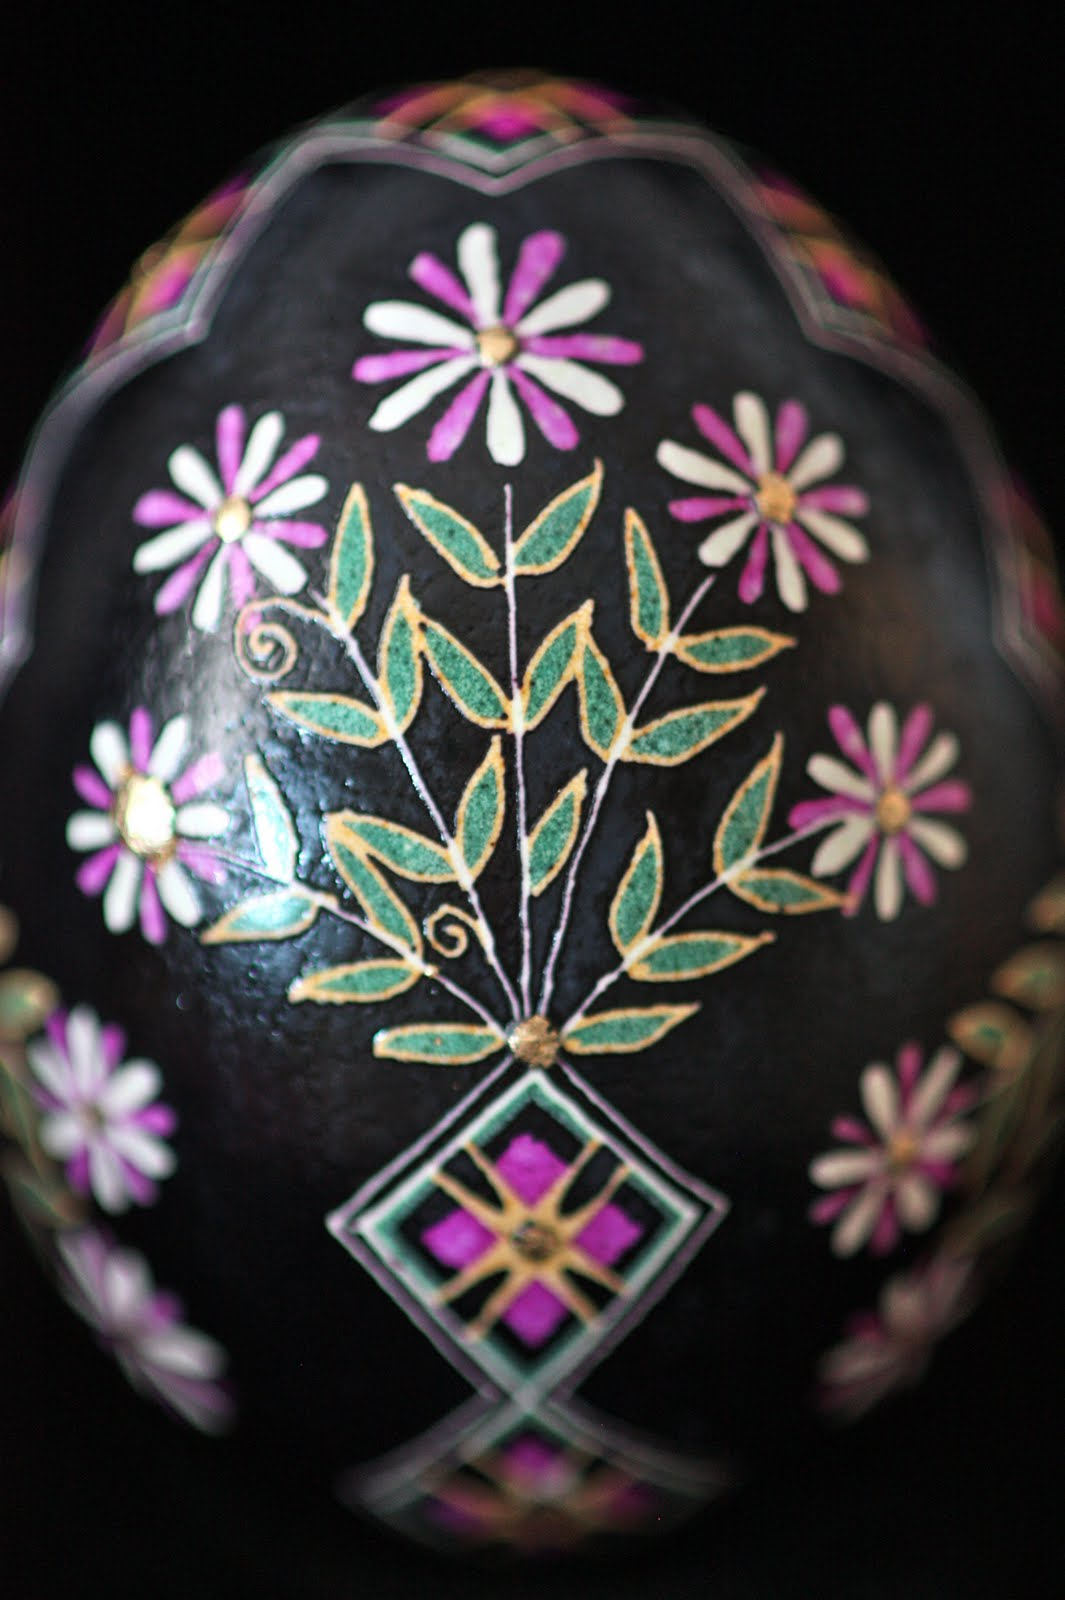 Floral Sakvy Meander Ukrainian Egg in Pink, Yellow and White on Black Background with Gold Accents